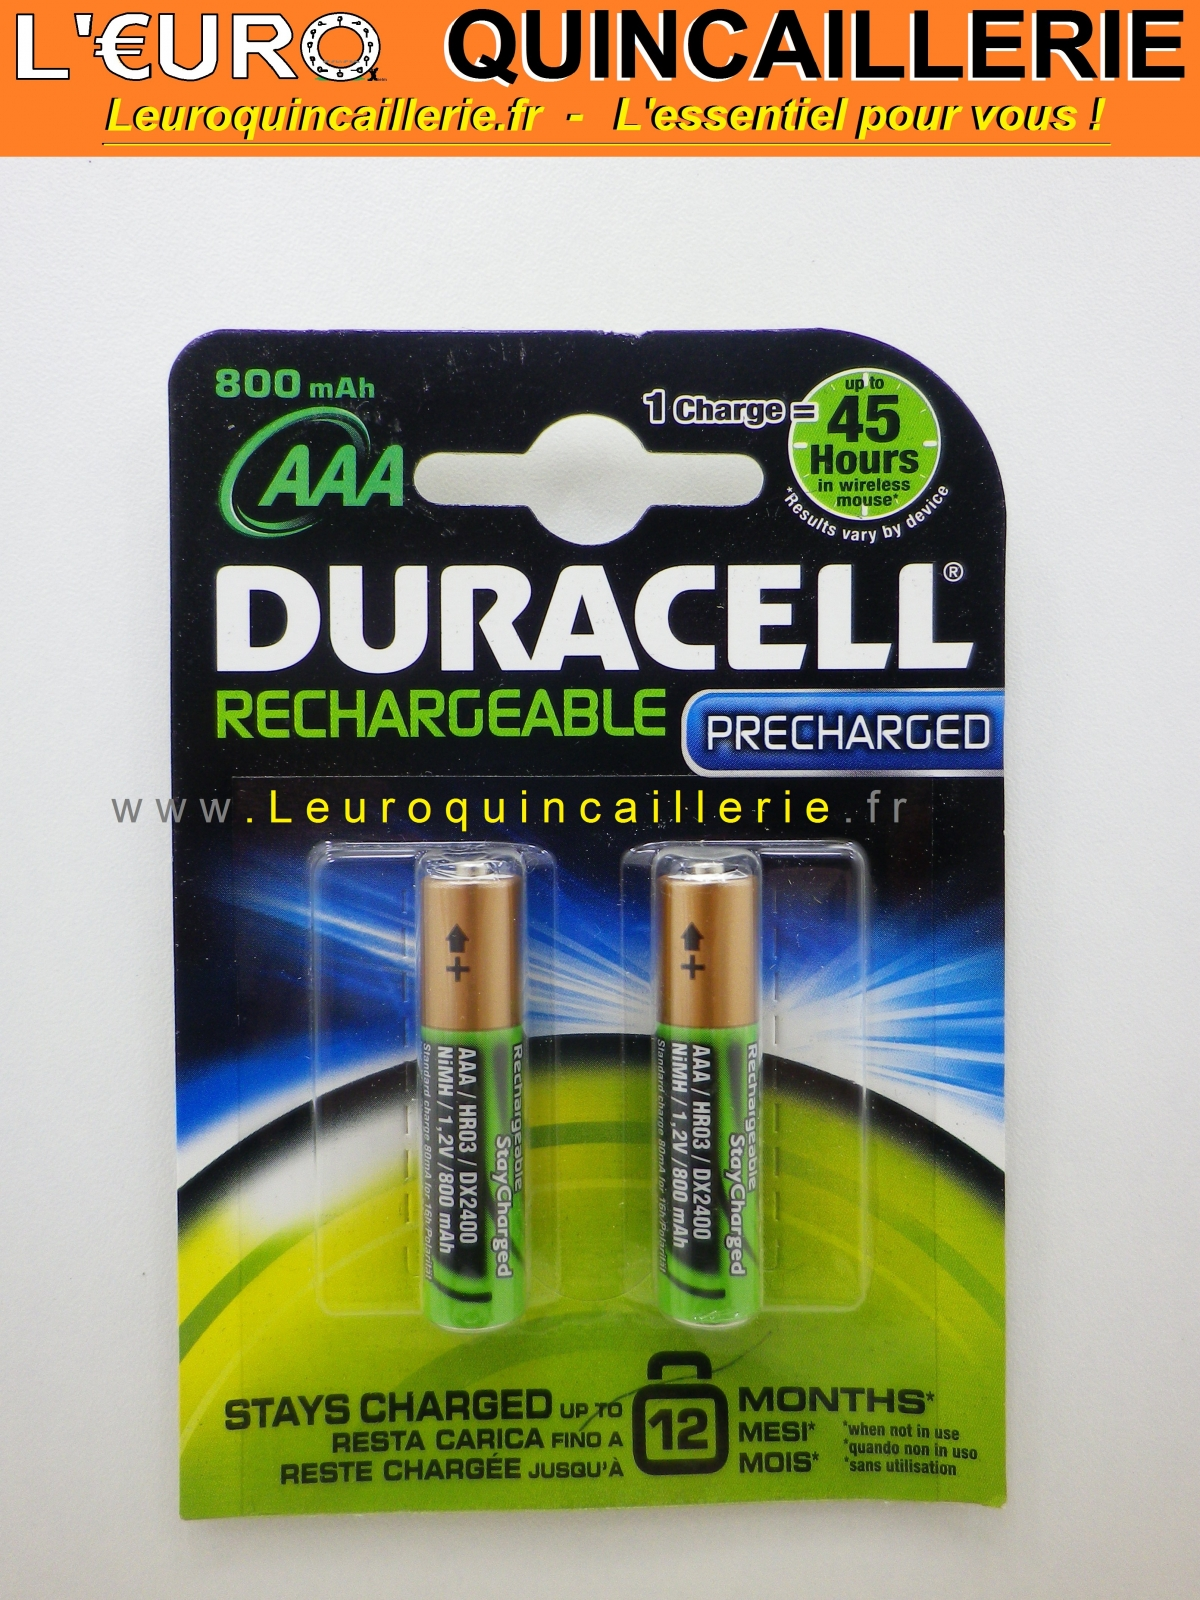 2 piles rechargeable aaa duracel pr charg 800 mah piles. Black Bedroom Furniture Sets. Home Design Ideas